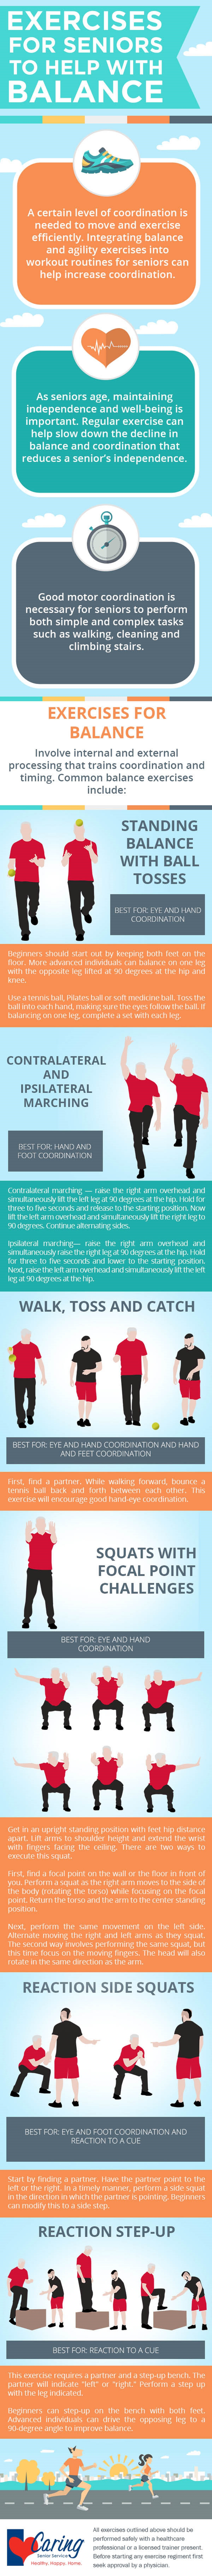 balance-exercises-for-seniors-infographic